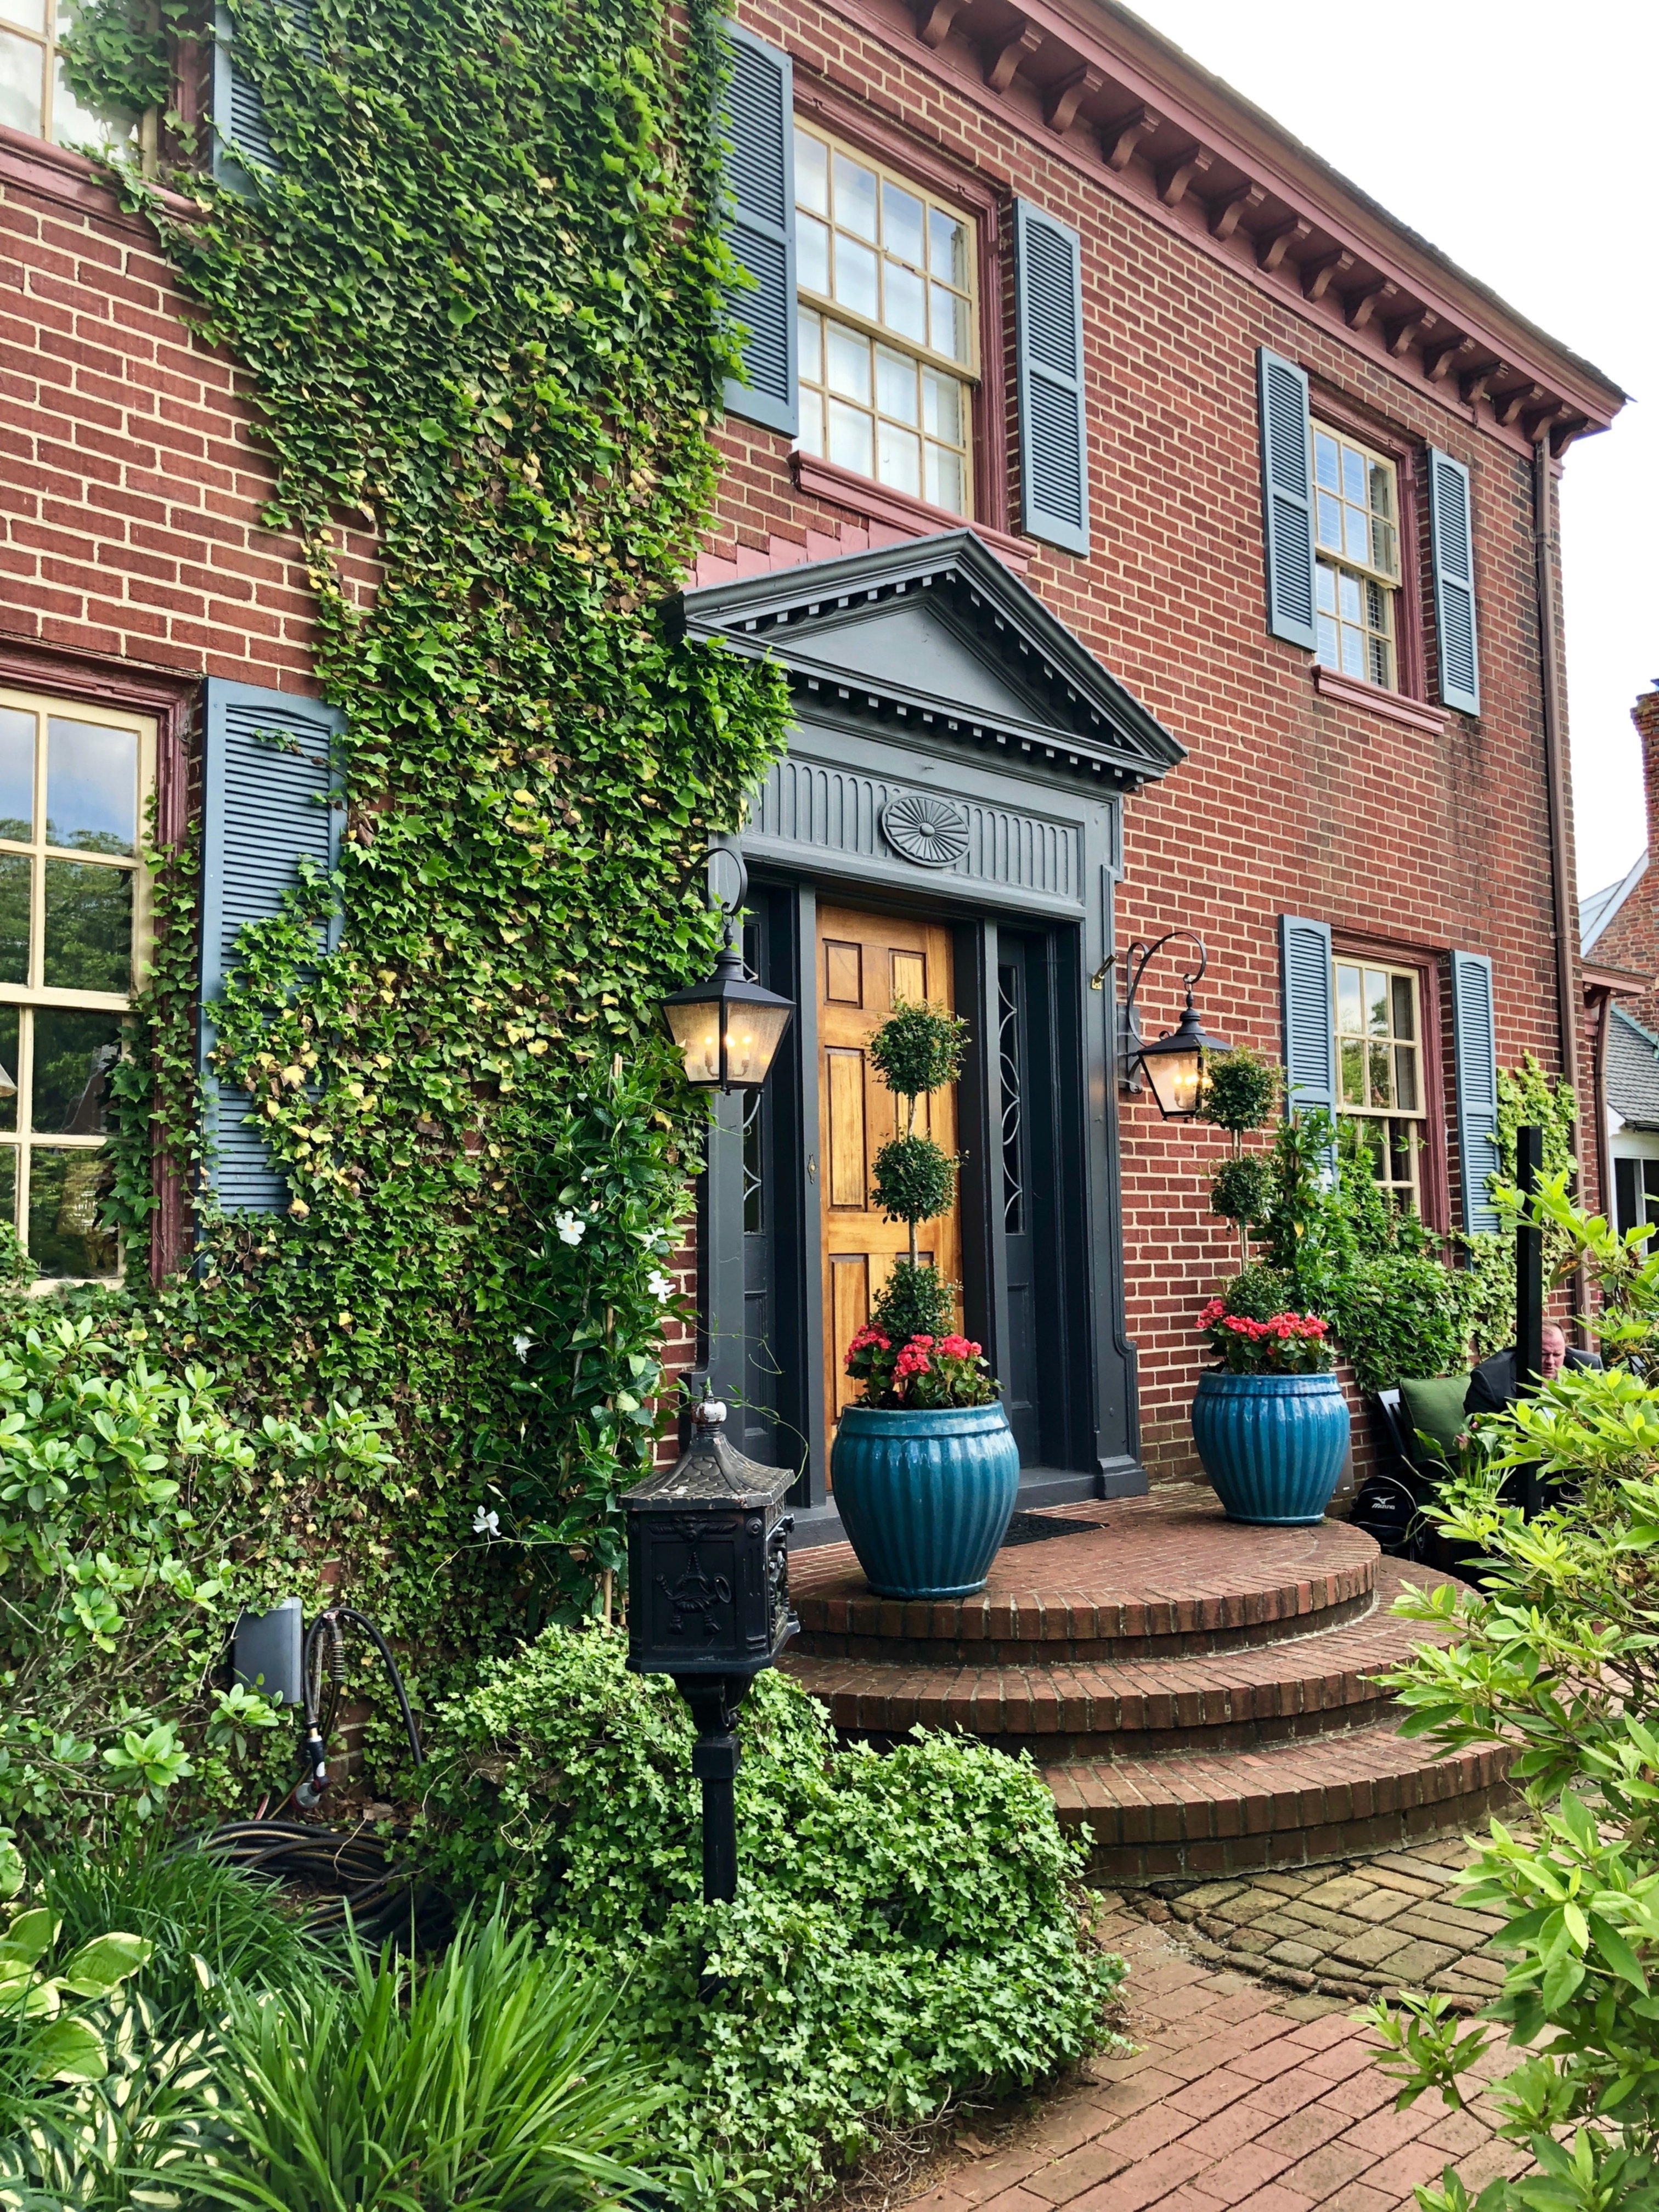 A close up of a flower garden in front of a brick building at Williamsburg Manor Bed & Breakfast.